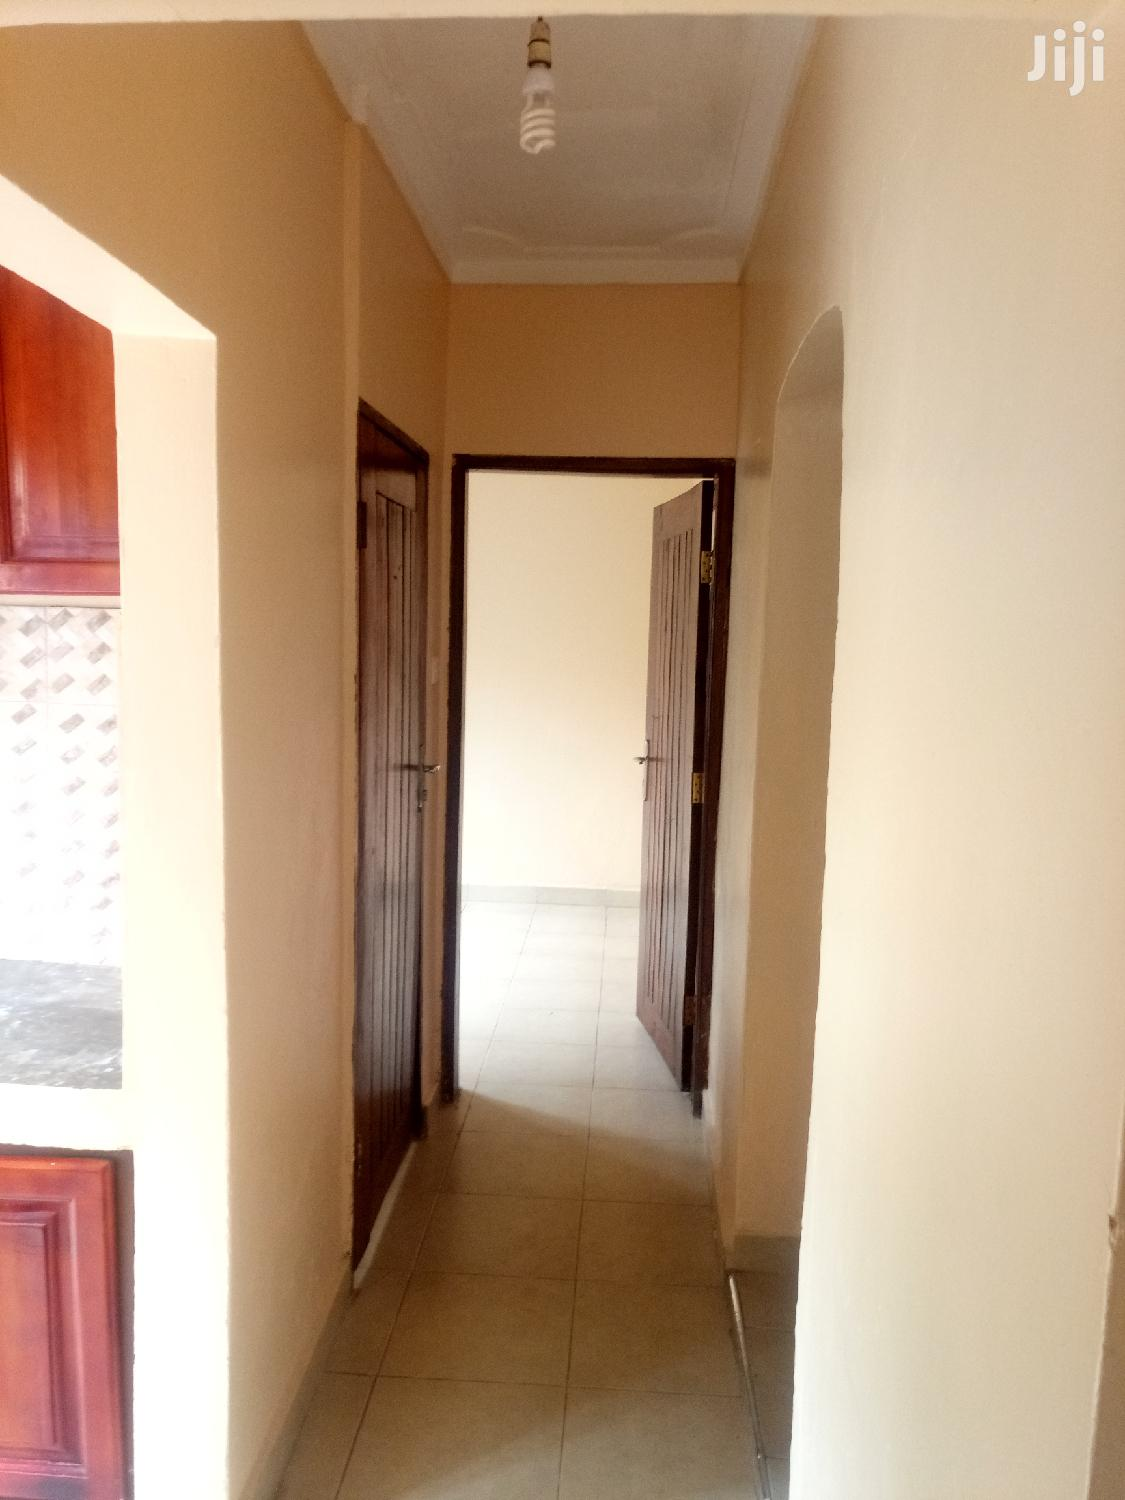 Affordable Two Bedrooms for Rent in Bukoto | Houses & Apartments For Rent for sale in Kampala, Central Region, Uganda